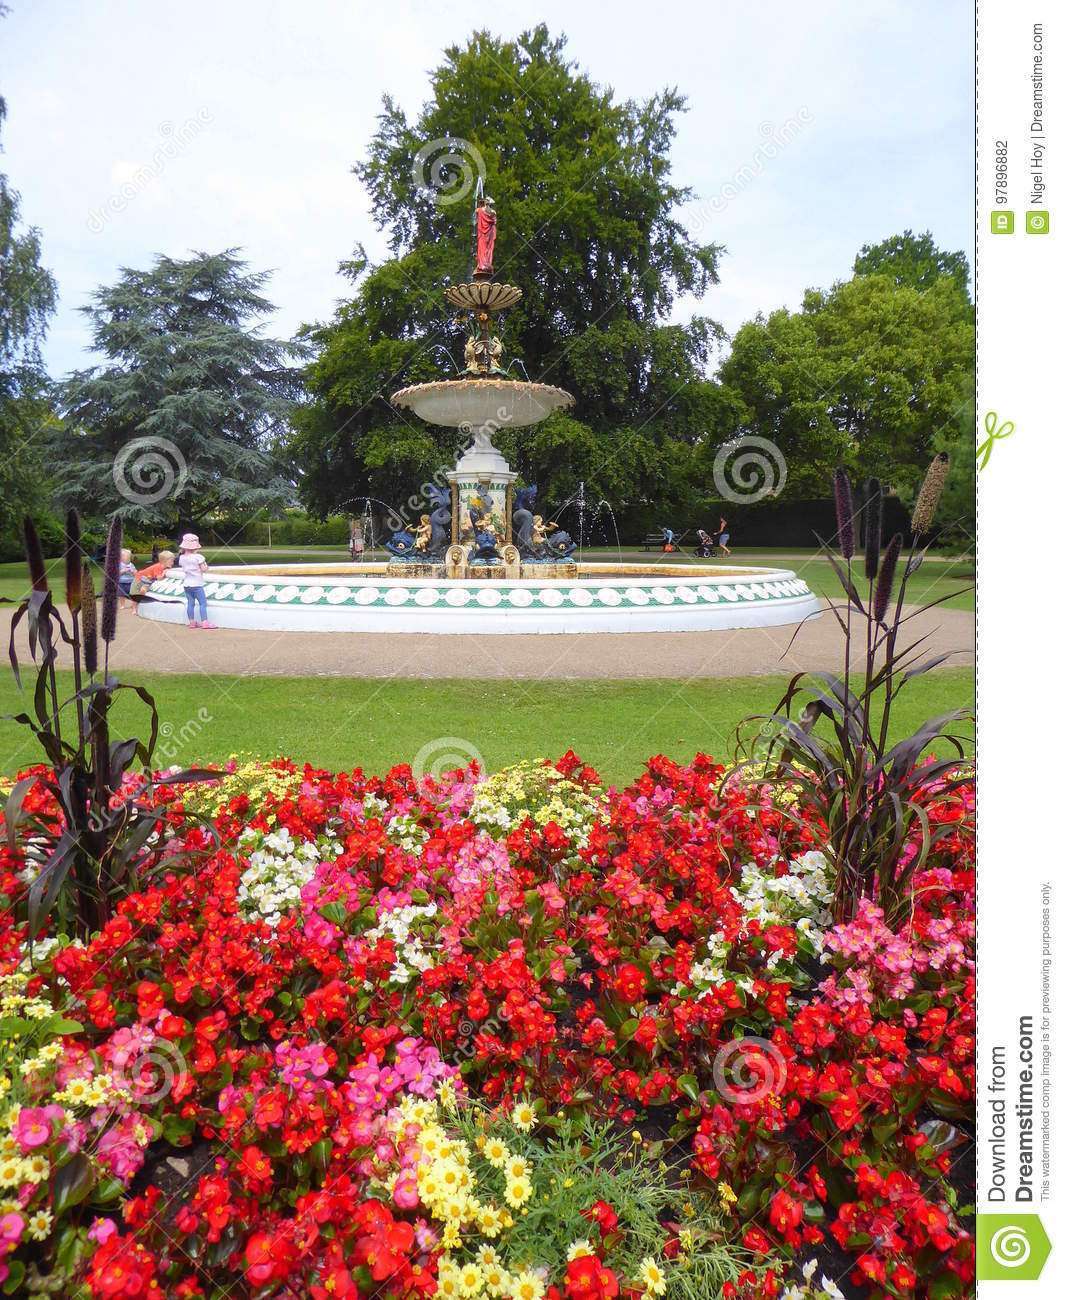 Water Fountain And Flower Garden Stock Photo Image Of Somerset